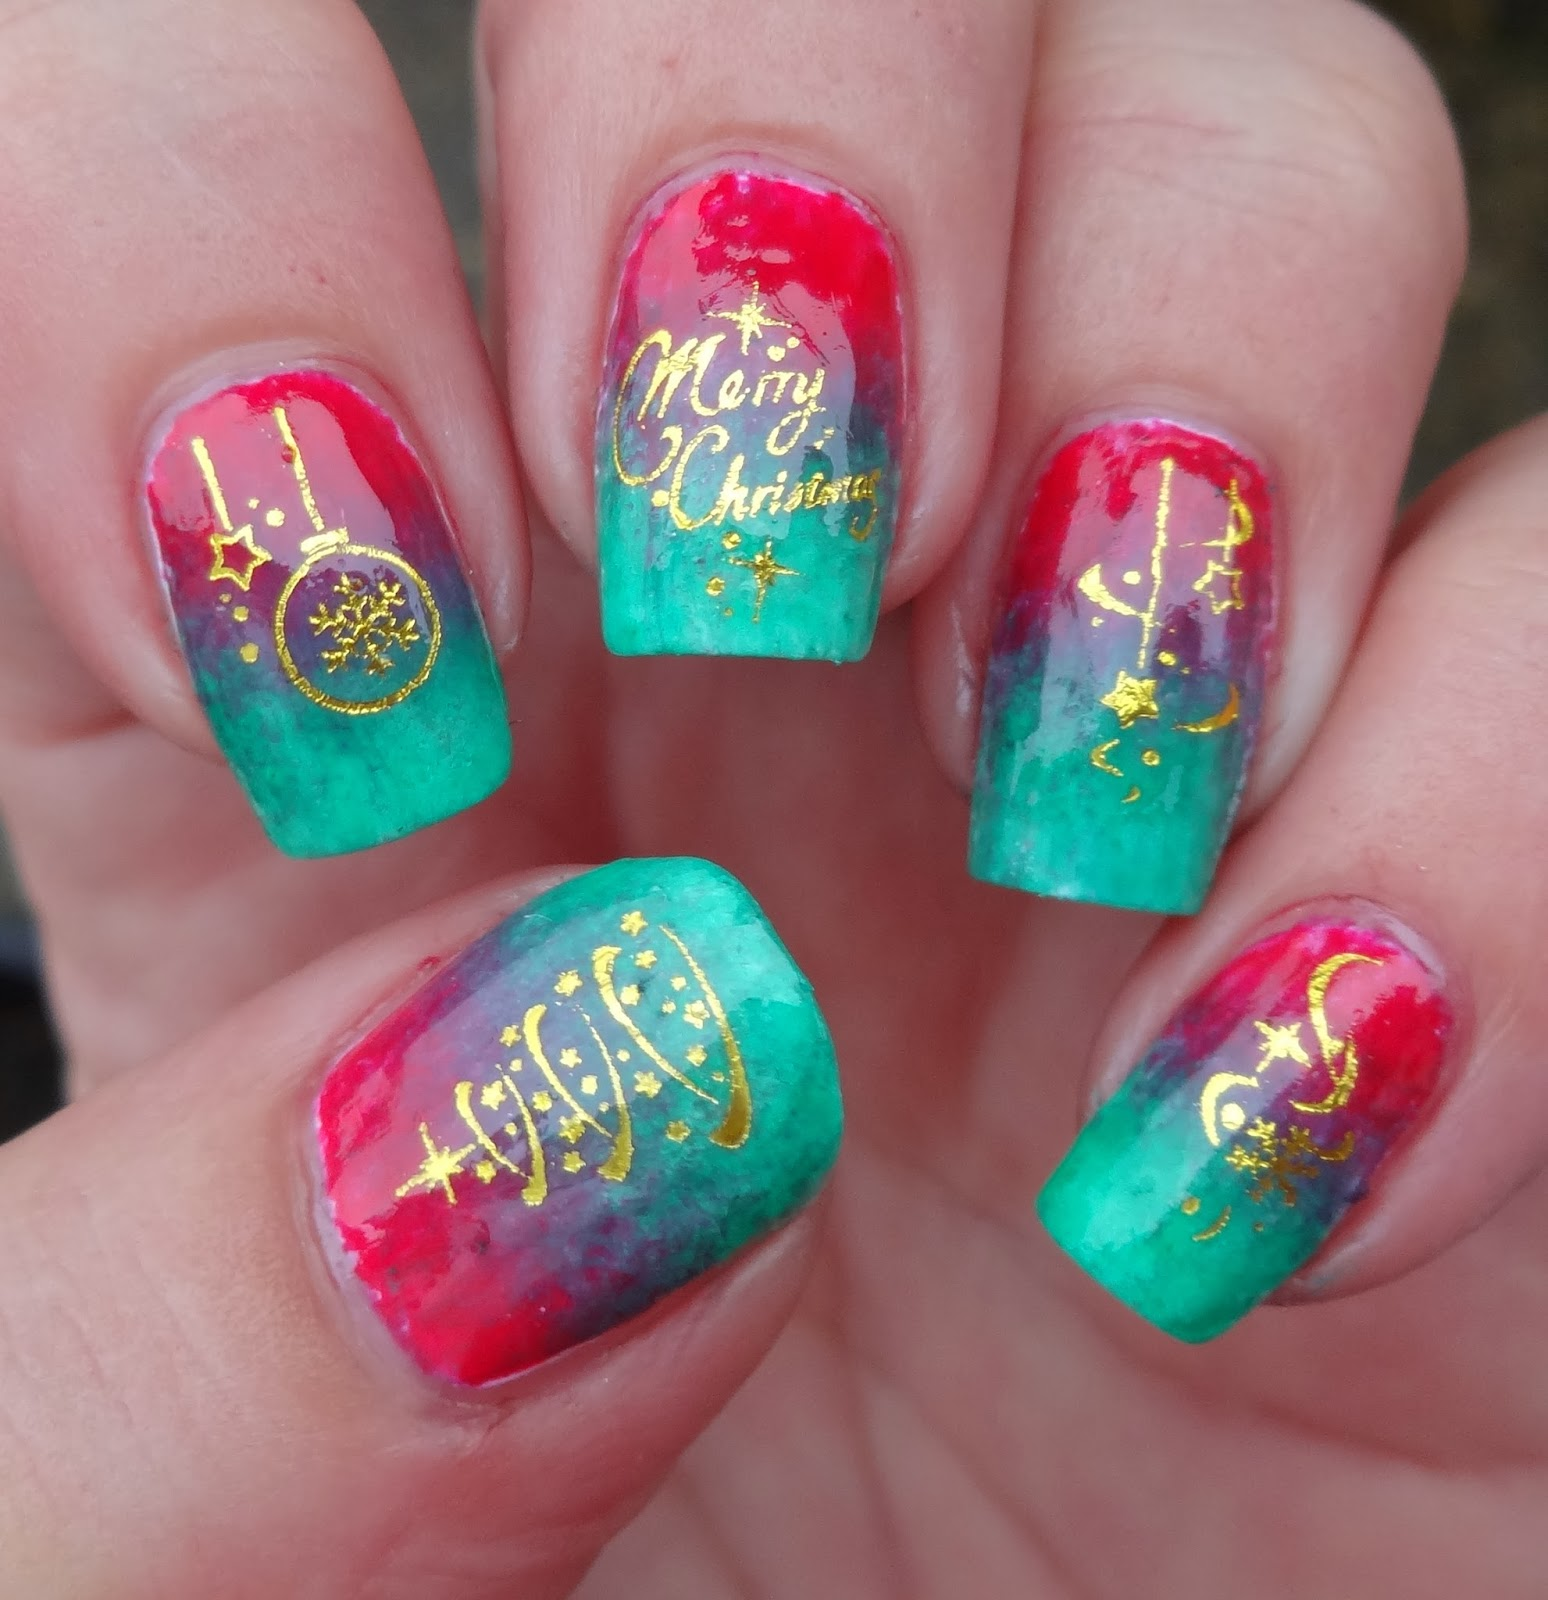 Wendy's Delights: Sparkly Nails